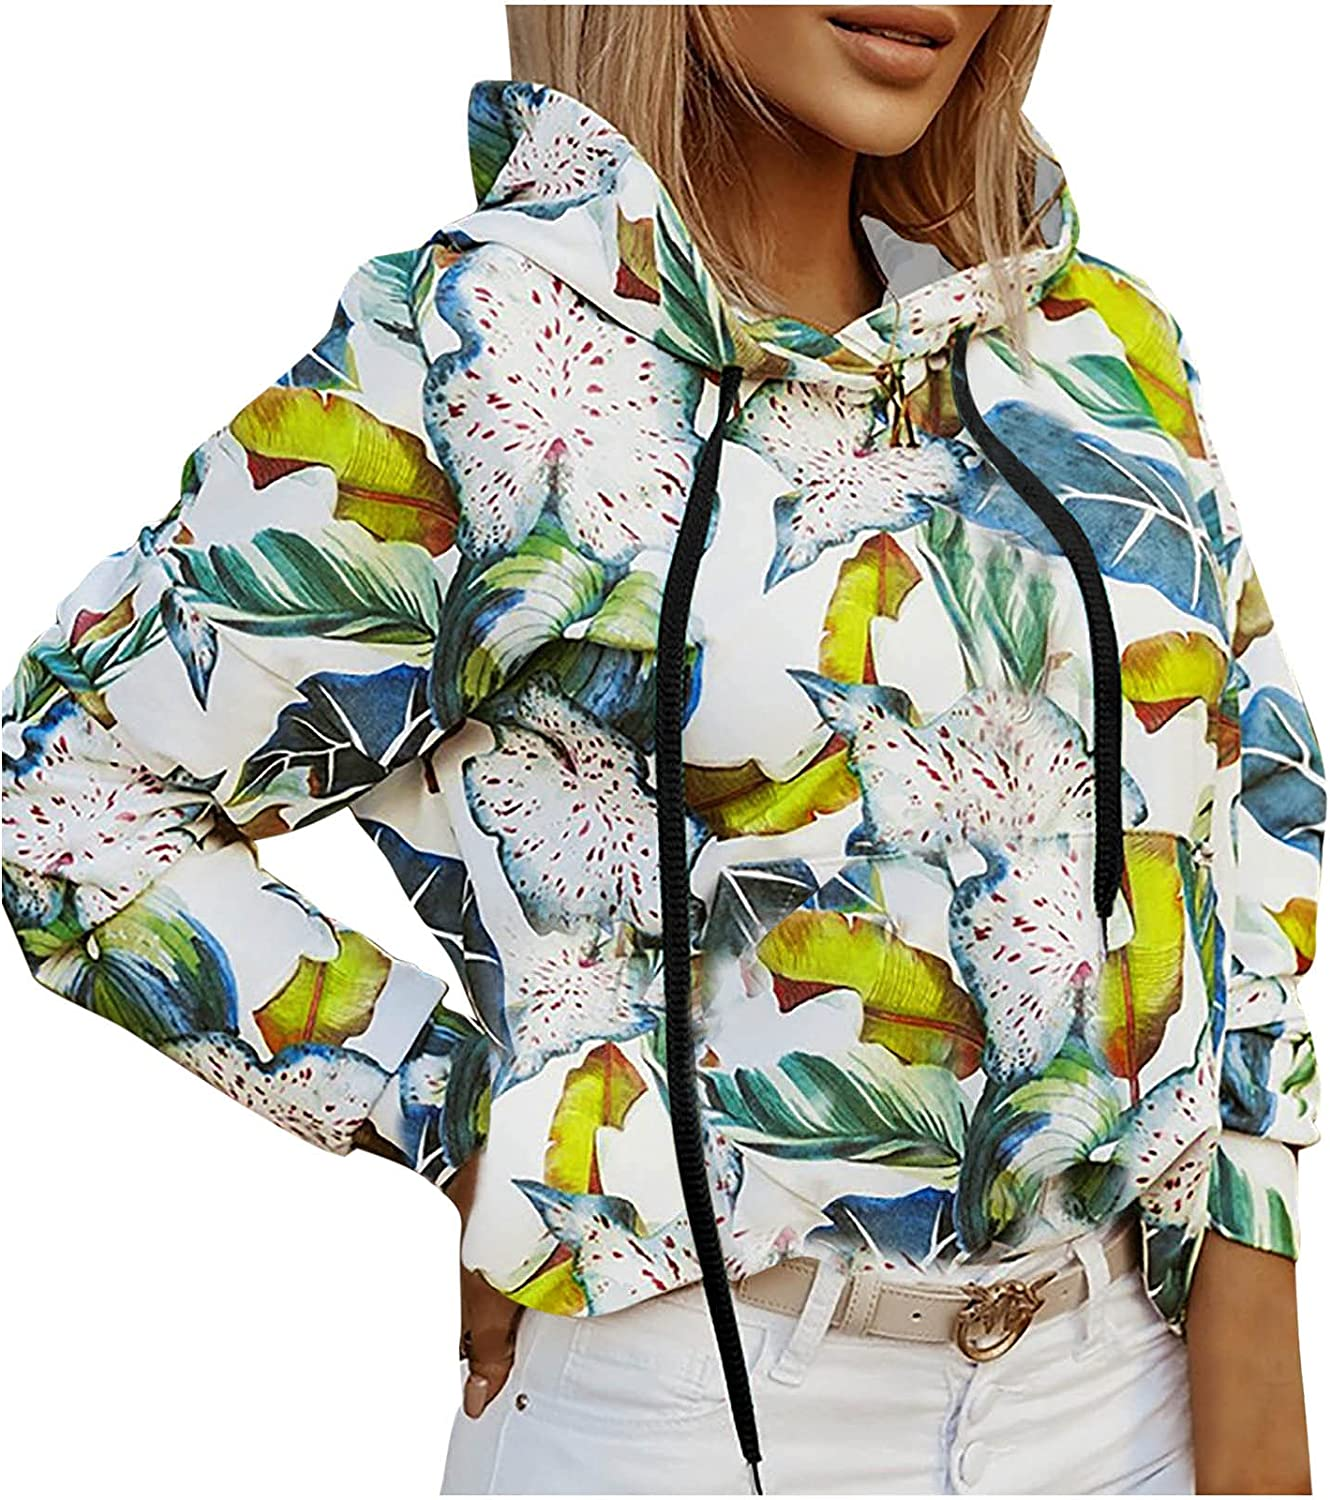 Women's Floral Graphic Hoodies Long Sleeve Sweatshirts Drawstring Pullover with Pocket Fashion Loose Shirts